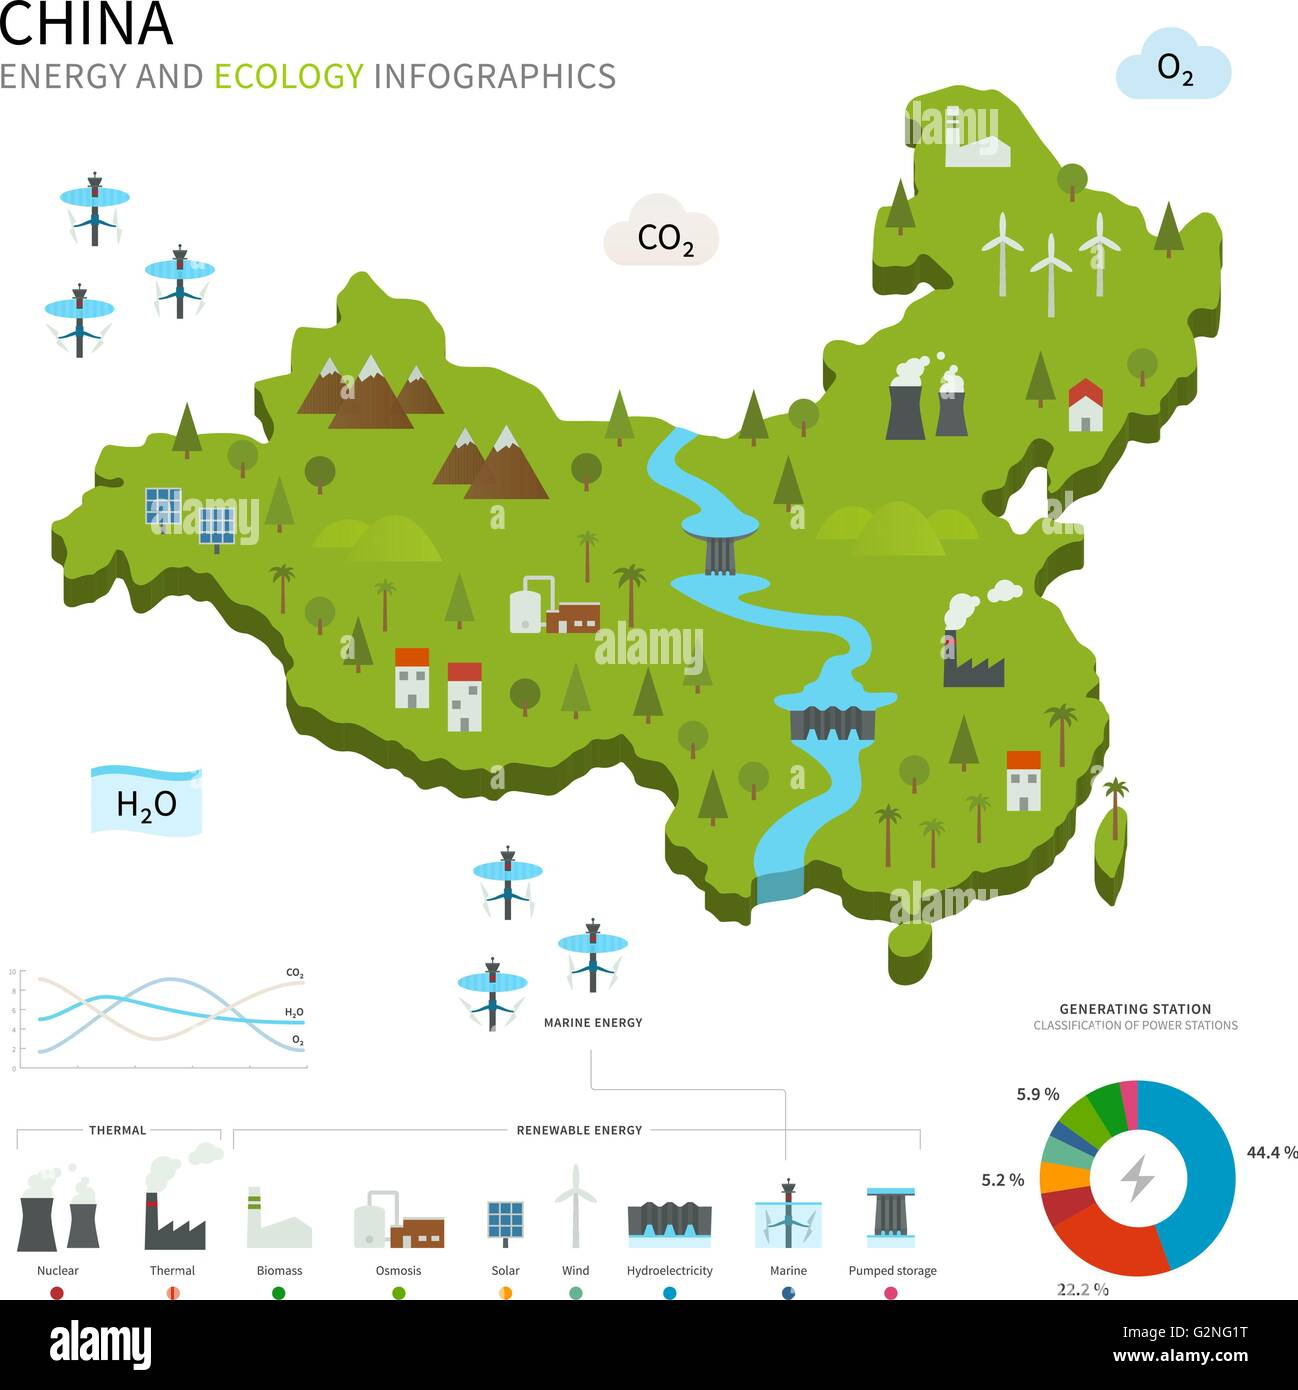 Energy industry and ecology of China - Stock Image